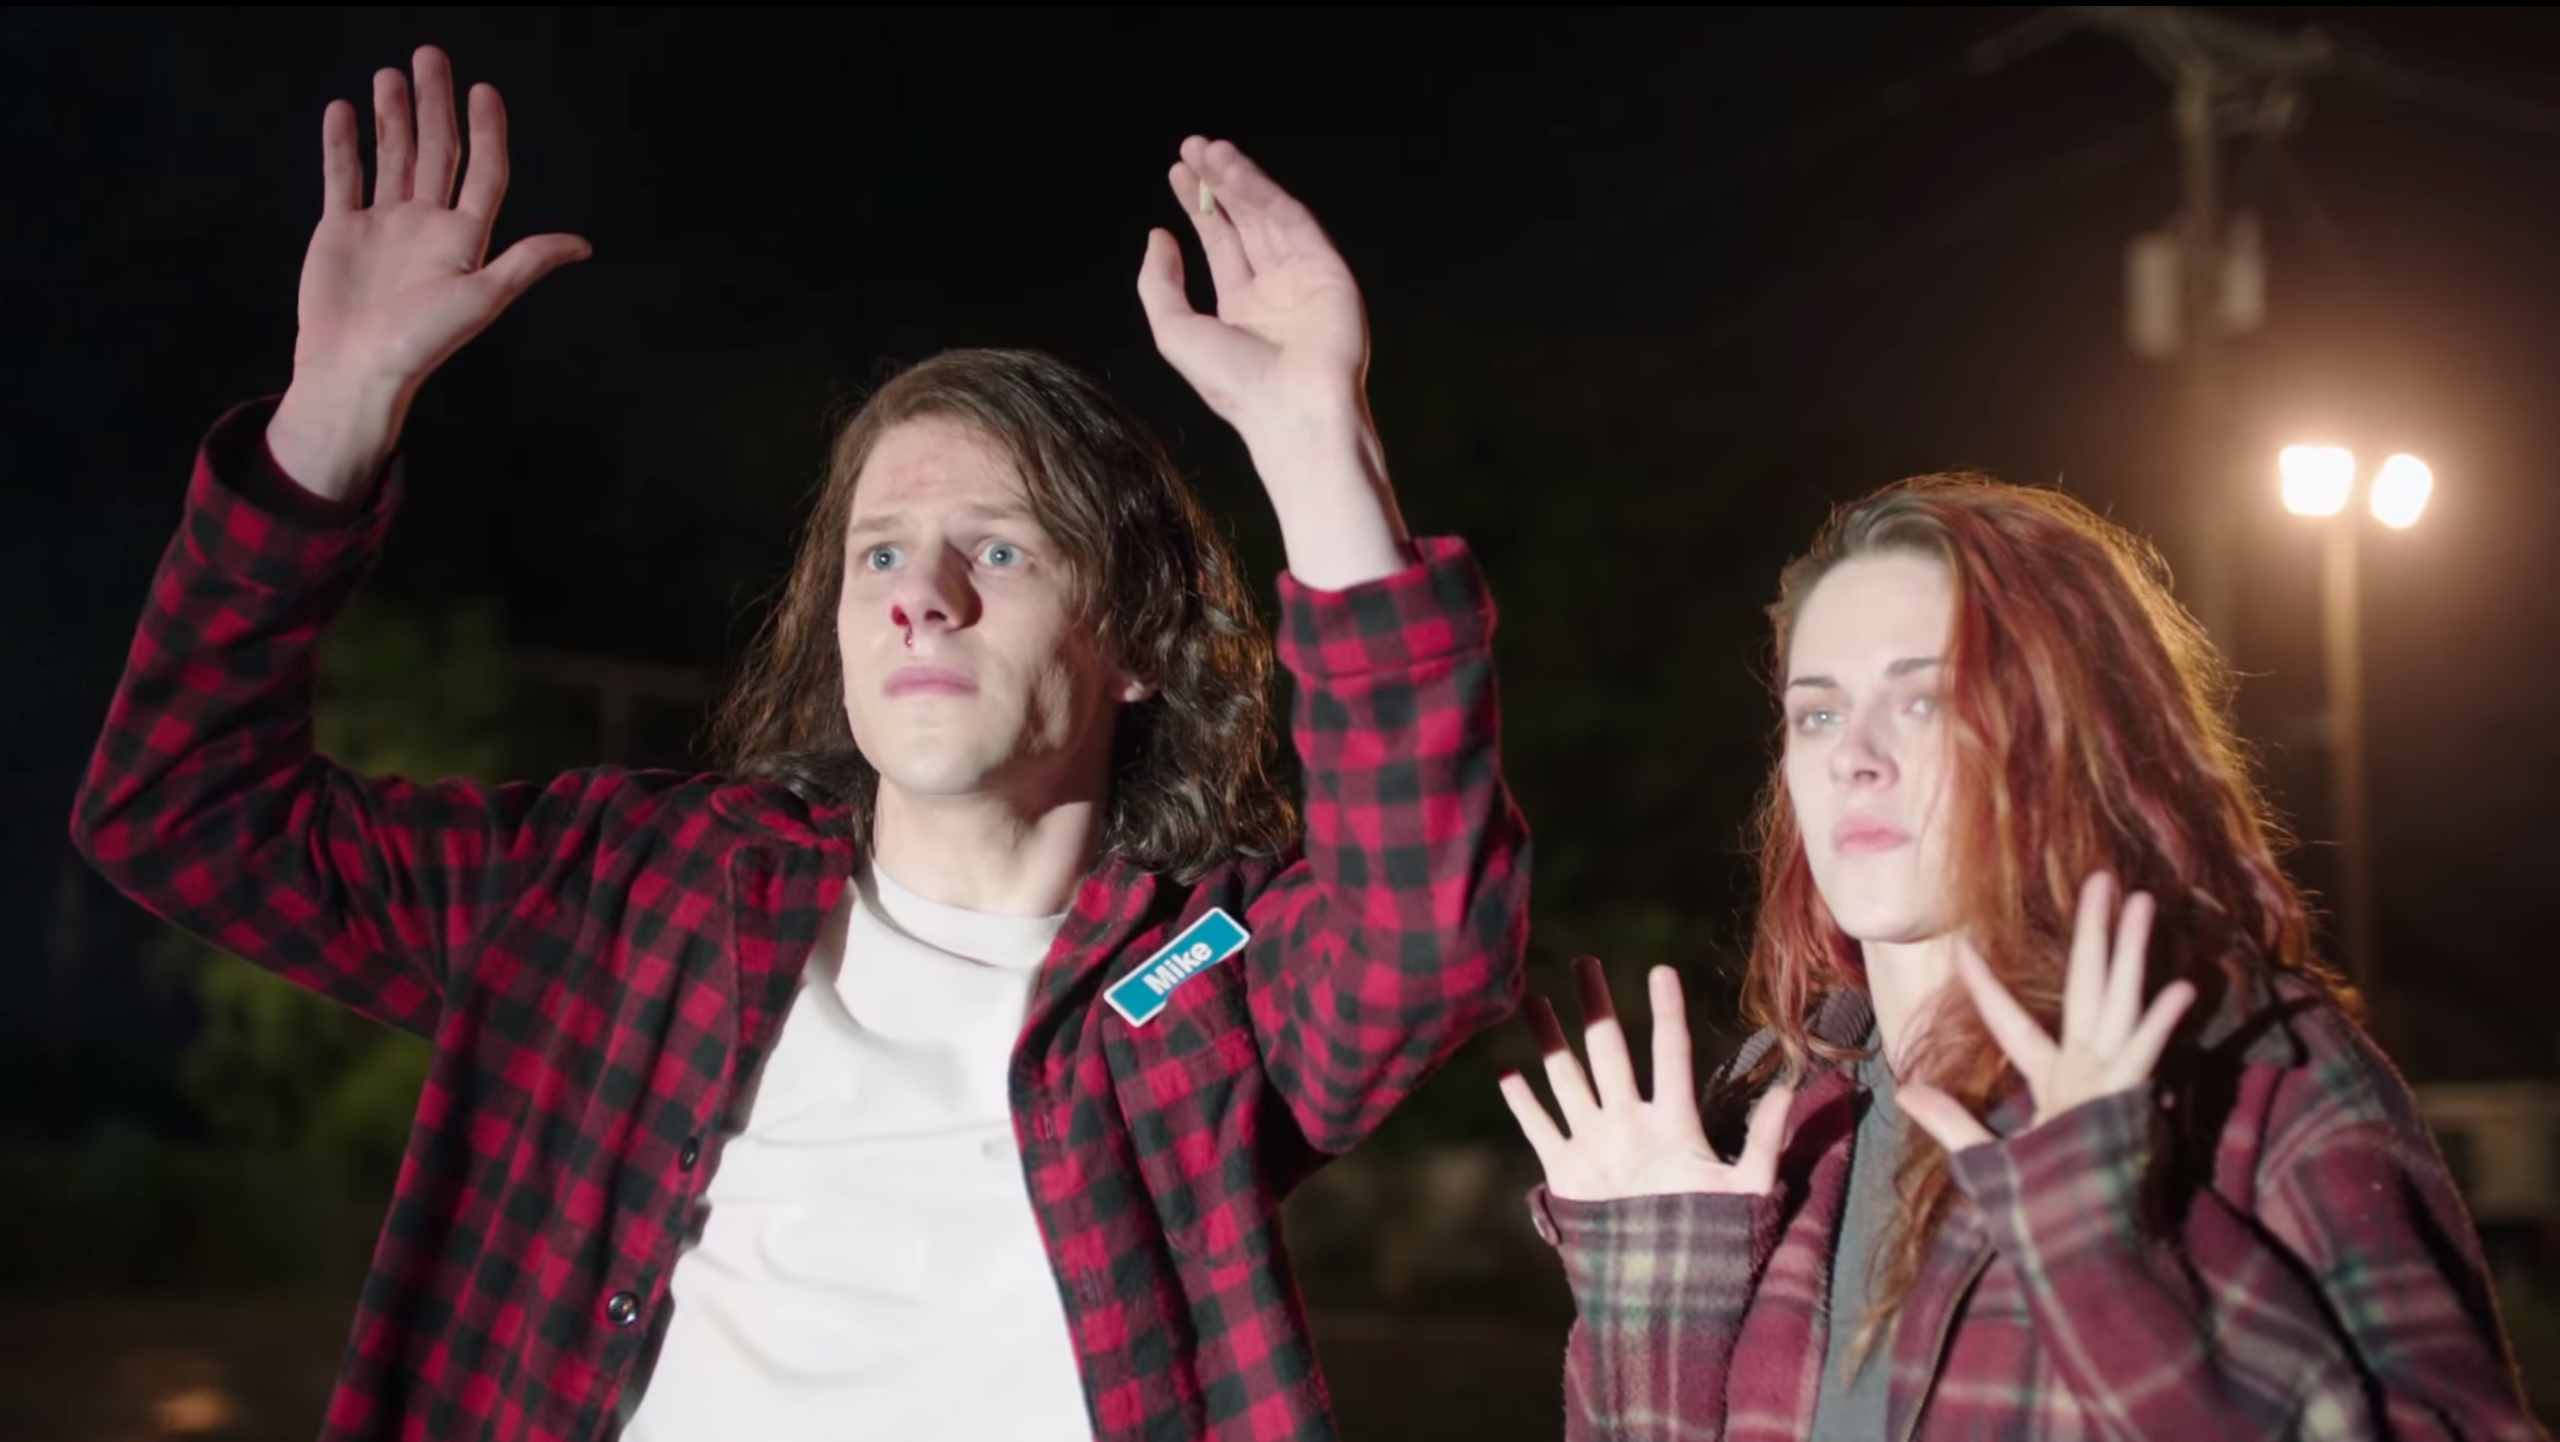 American Ultra: 5 Minutes of Behind-the-Scenes Footage | Collider